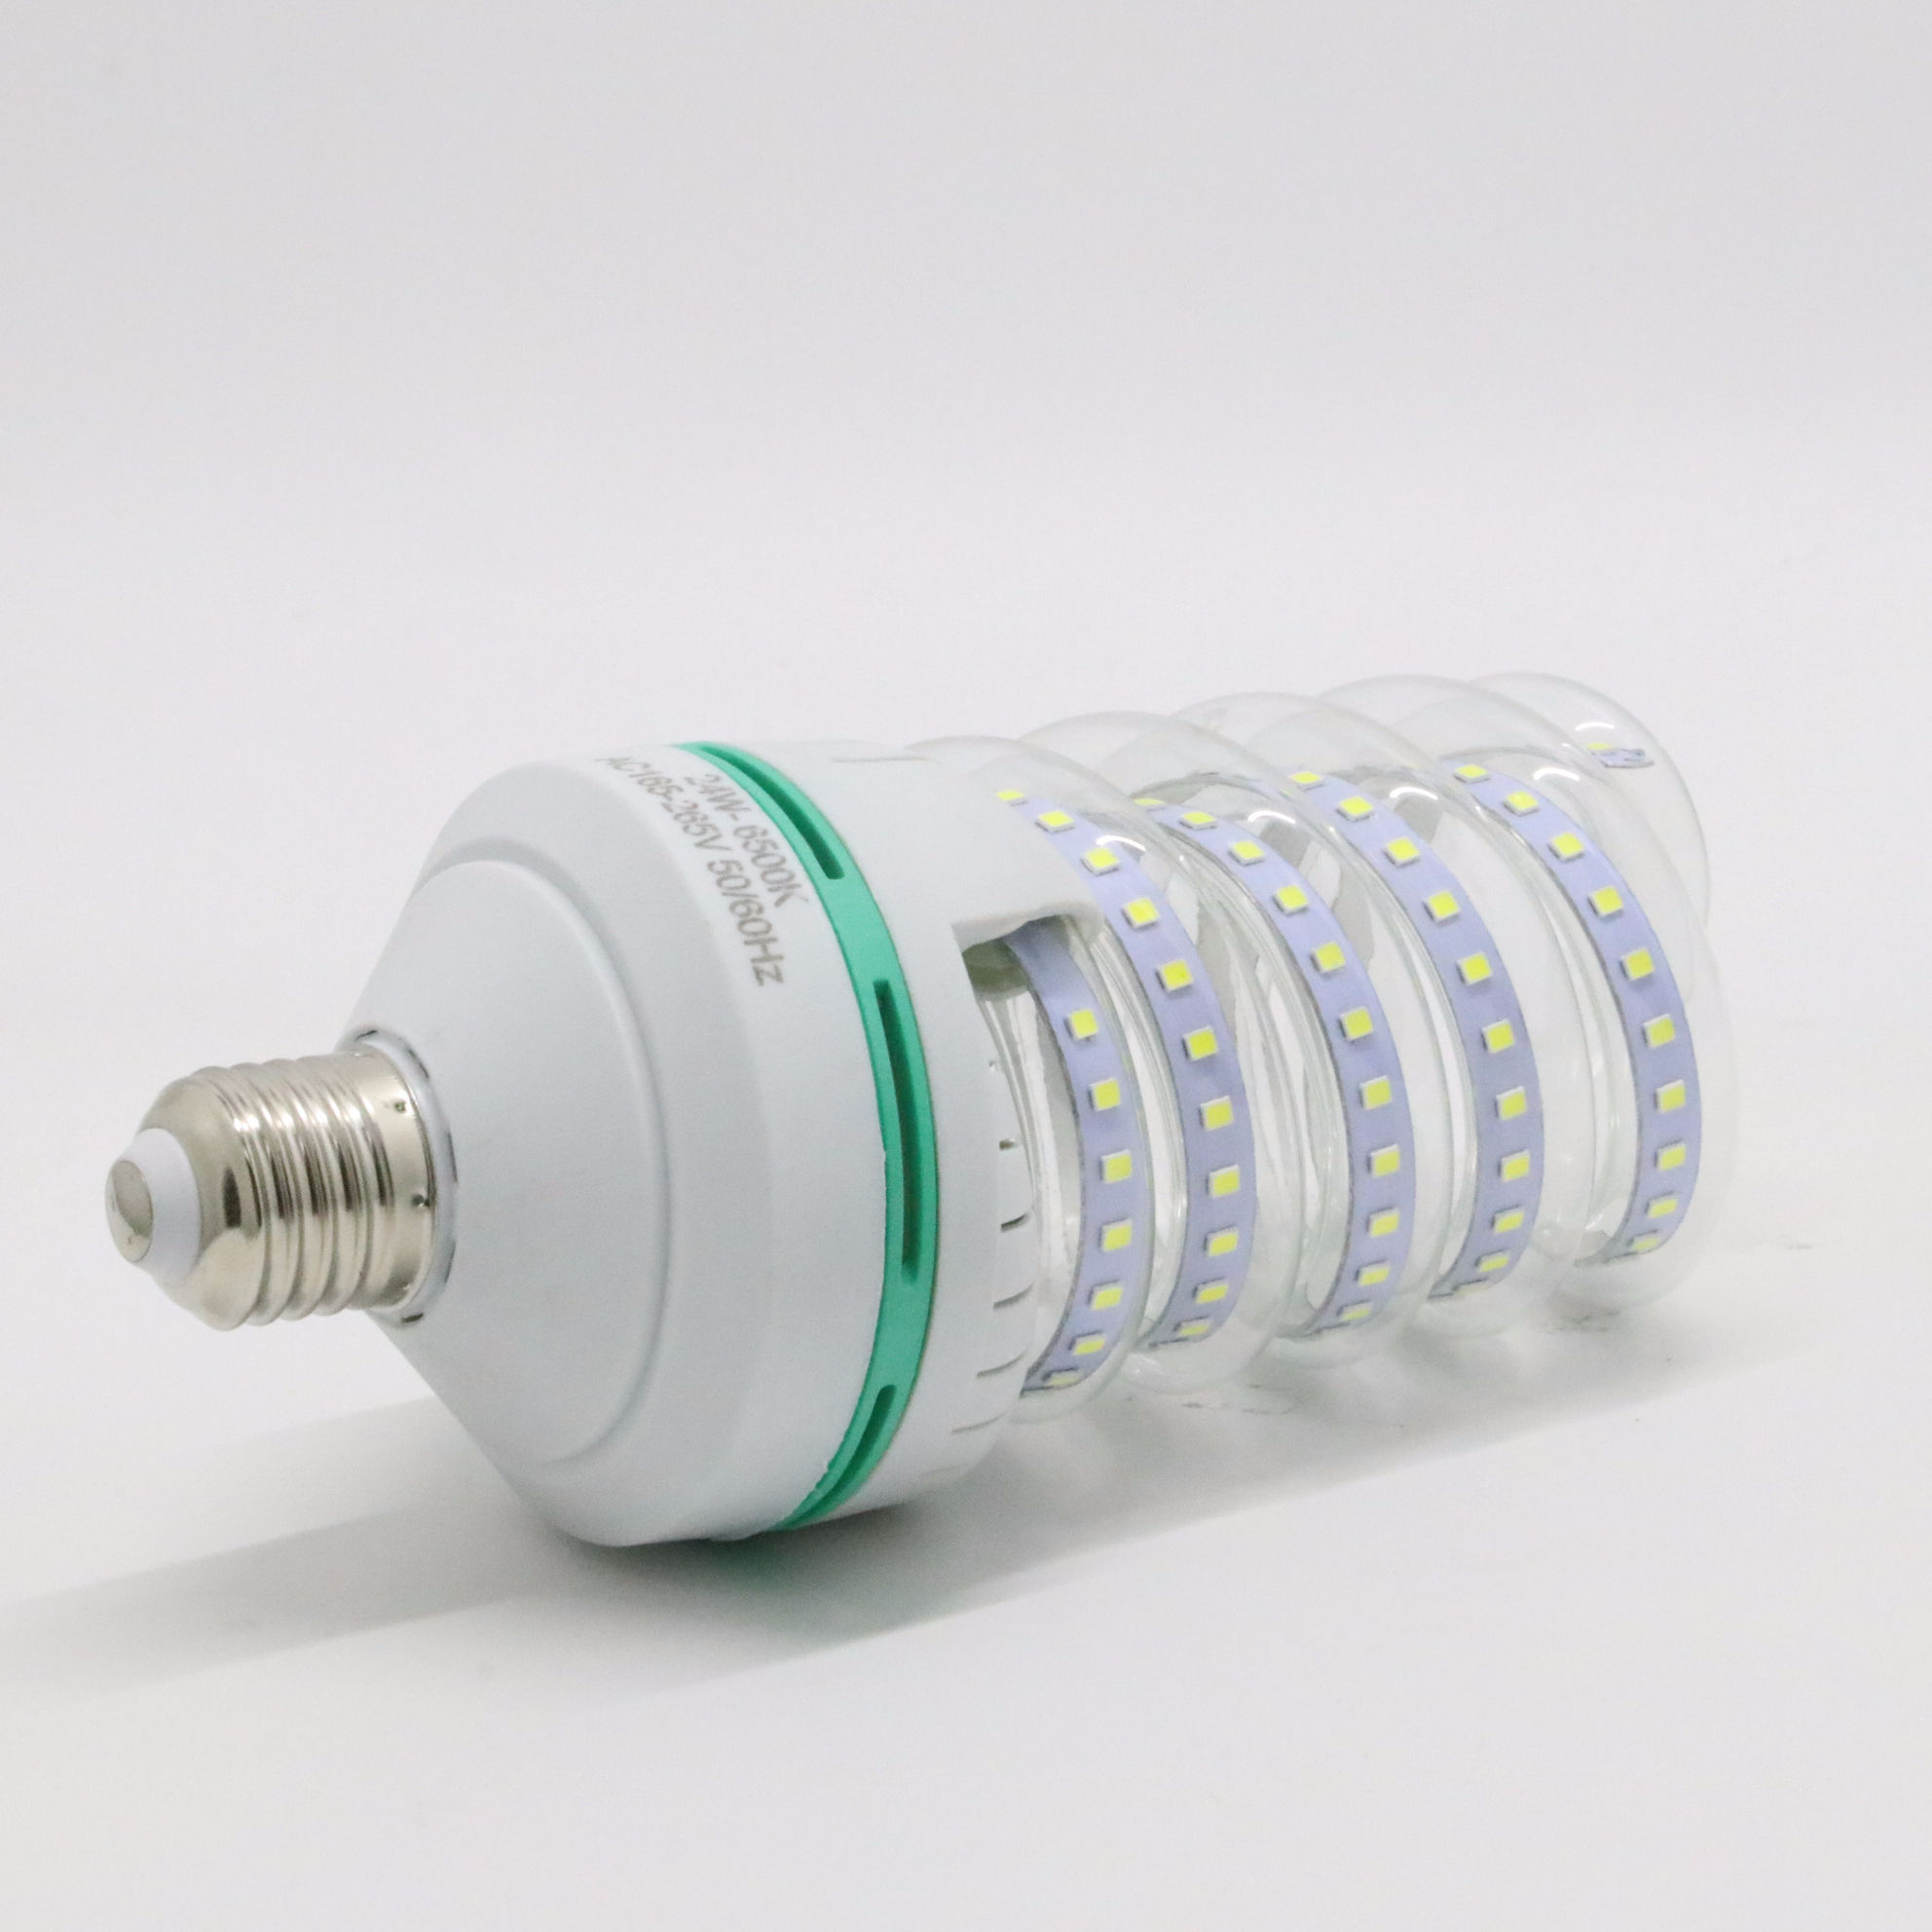 High bright led indoor lighting for factory lighting spiral led energy saving bulbs 5w